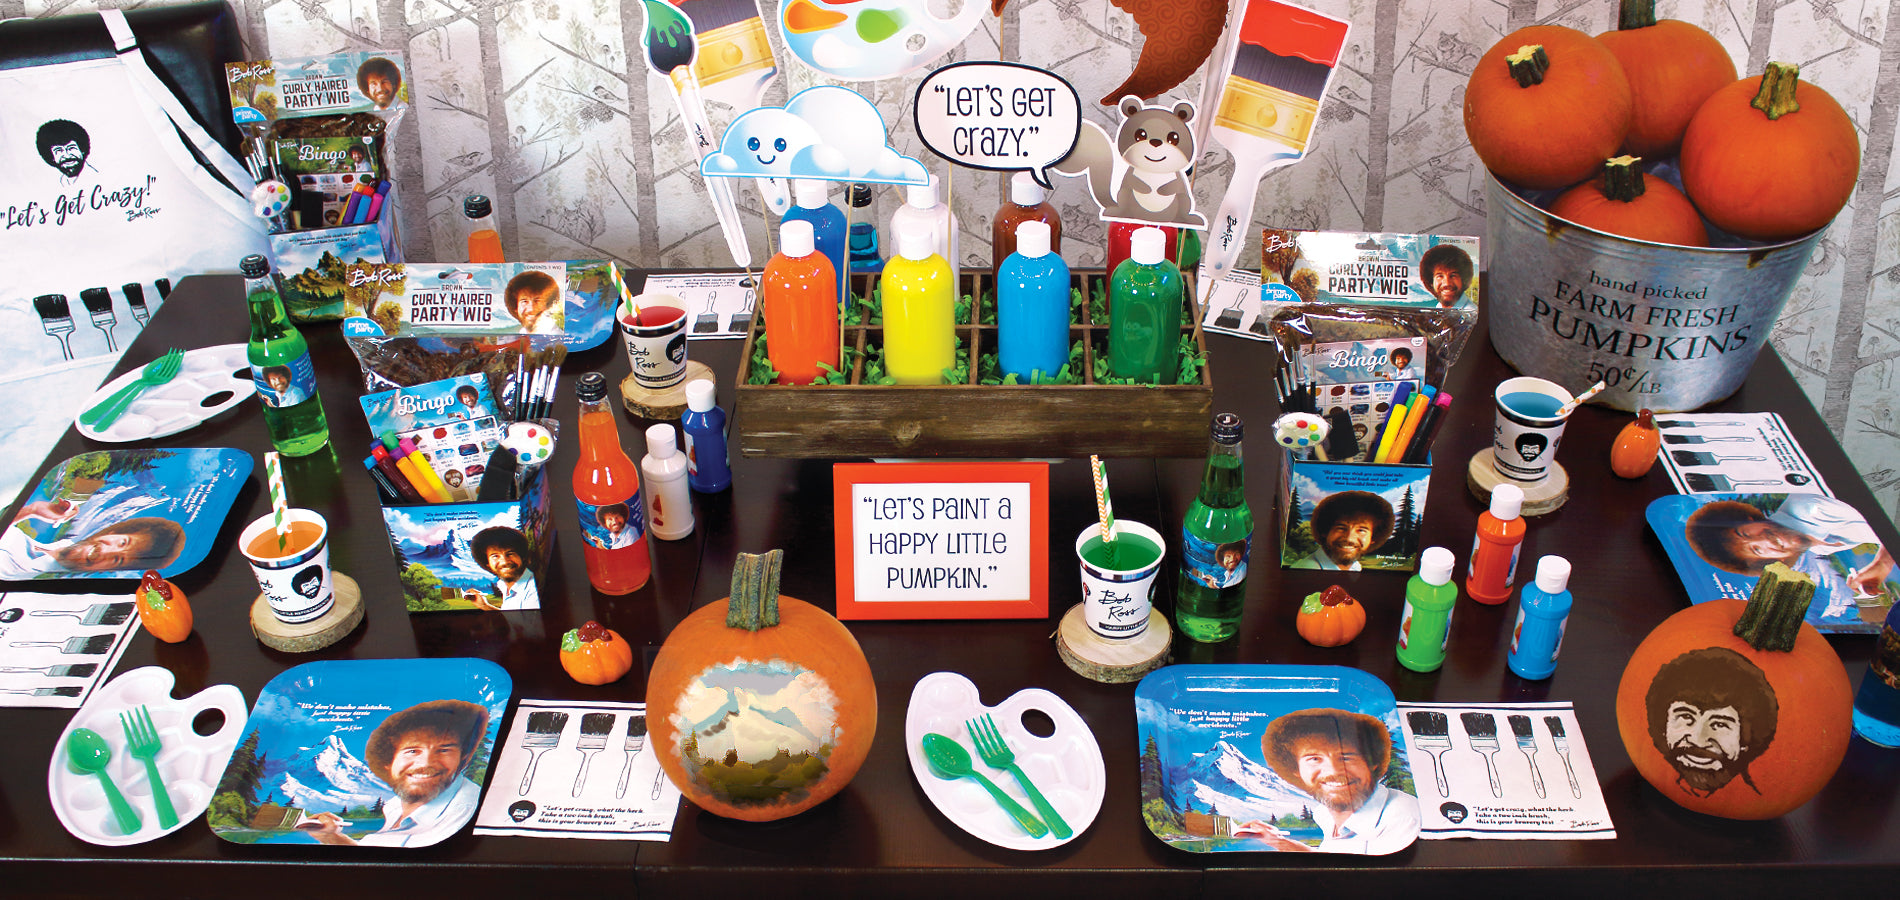 Bob Ross Bobtober party table image